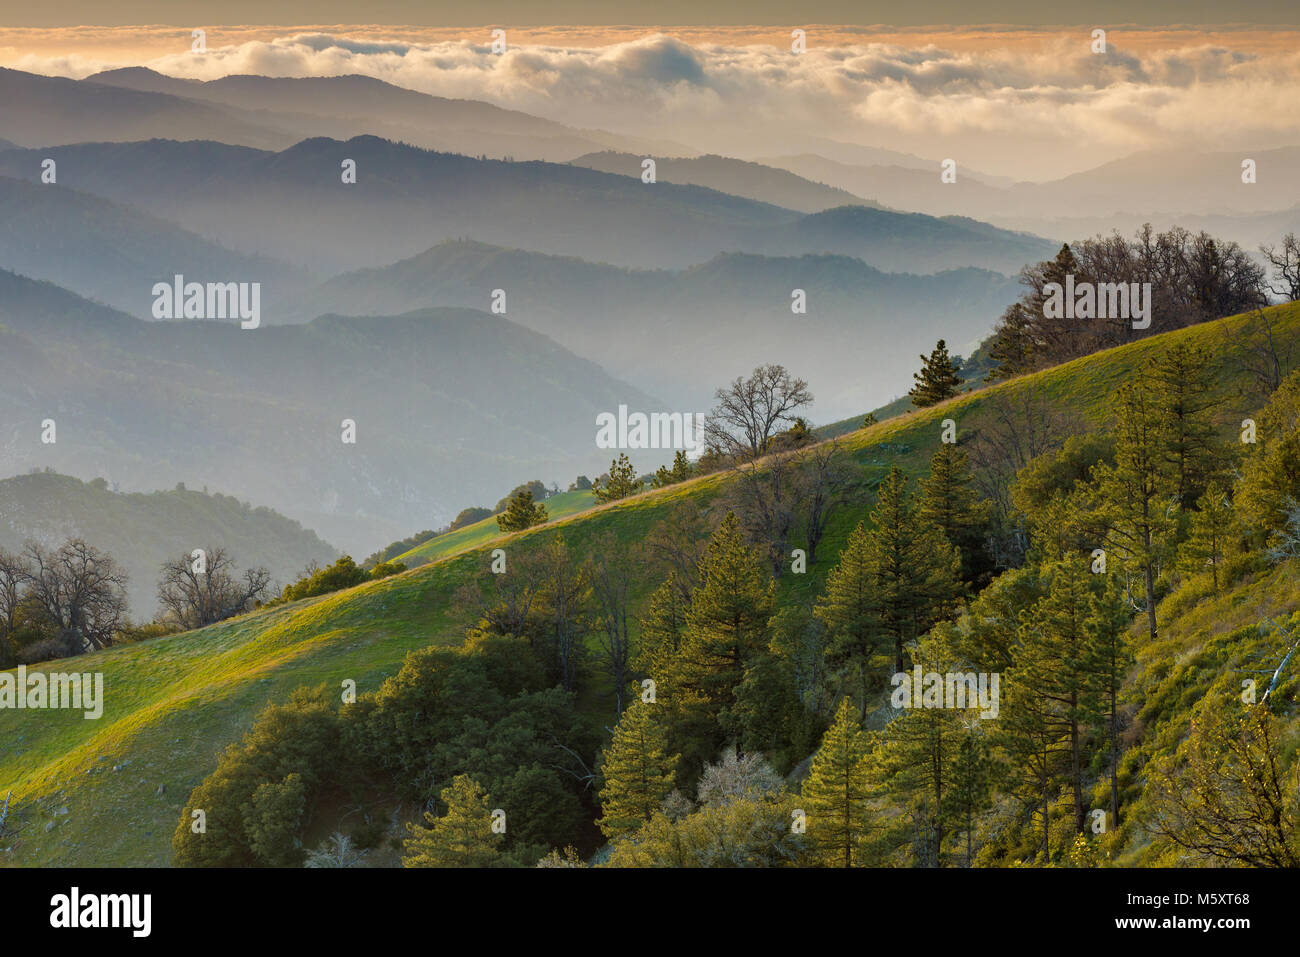 Last Light, Ventana Wilderness, Los Padres National Forest, Big Sur, Monterey County, California - Stock Image